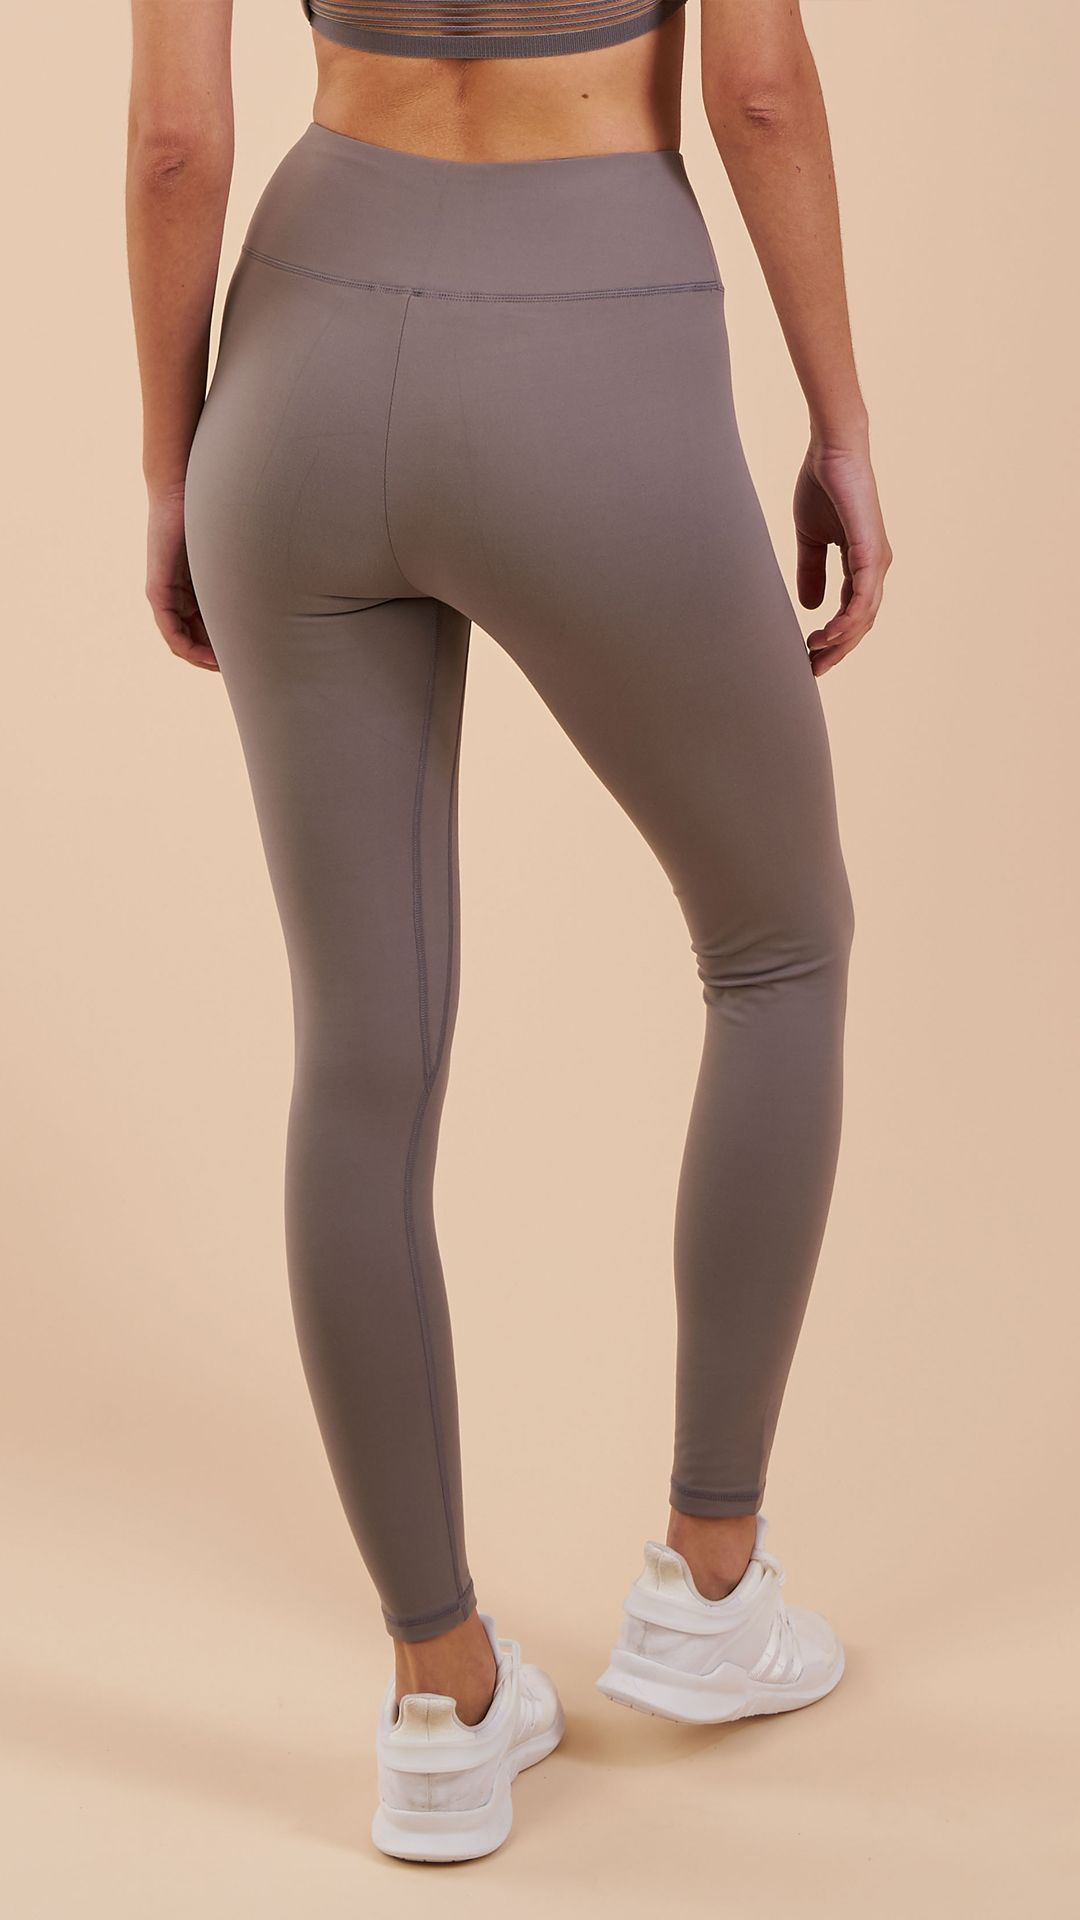 341465ca74b376 The Gymshark Dreamy Legging's are back in new colourways. With a high waist  fit, concealed pocket along the waistband, and beautifully soft material  blend, ...